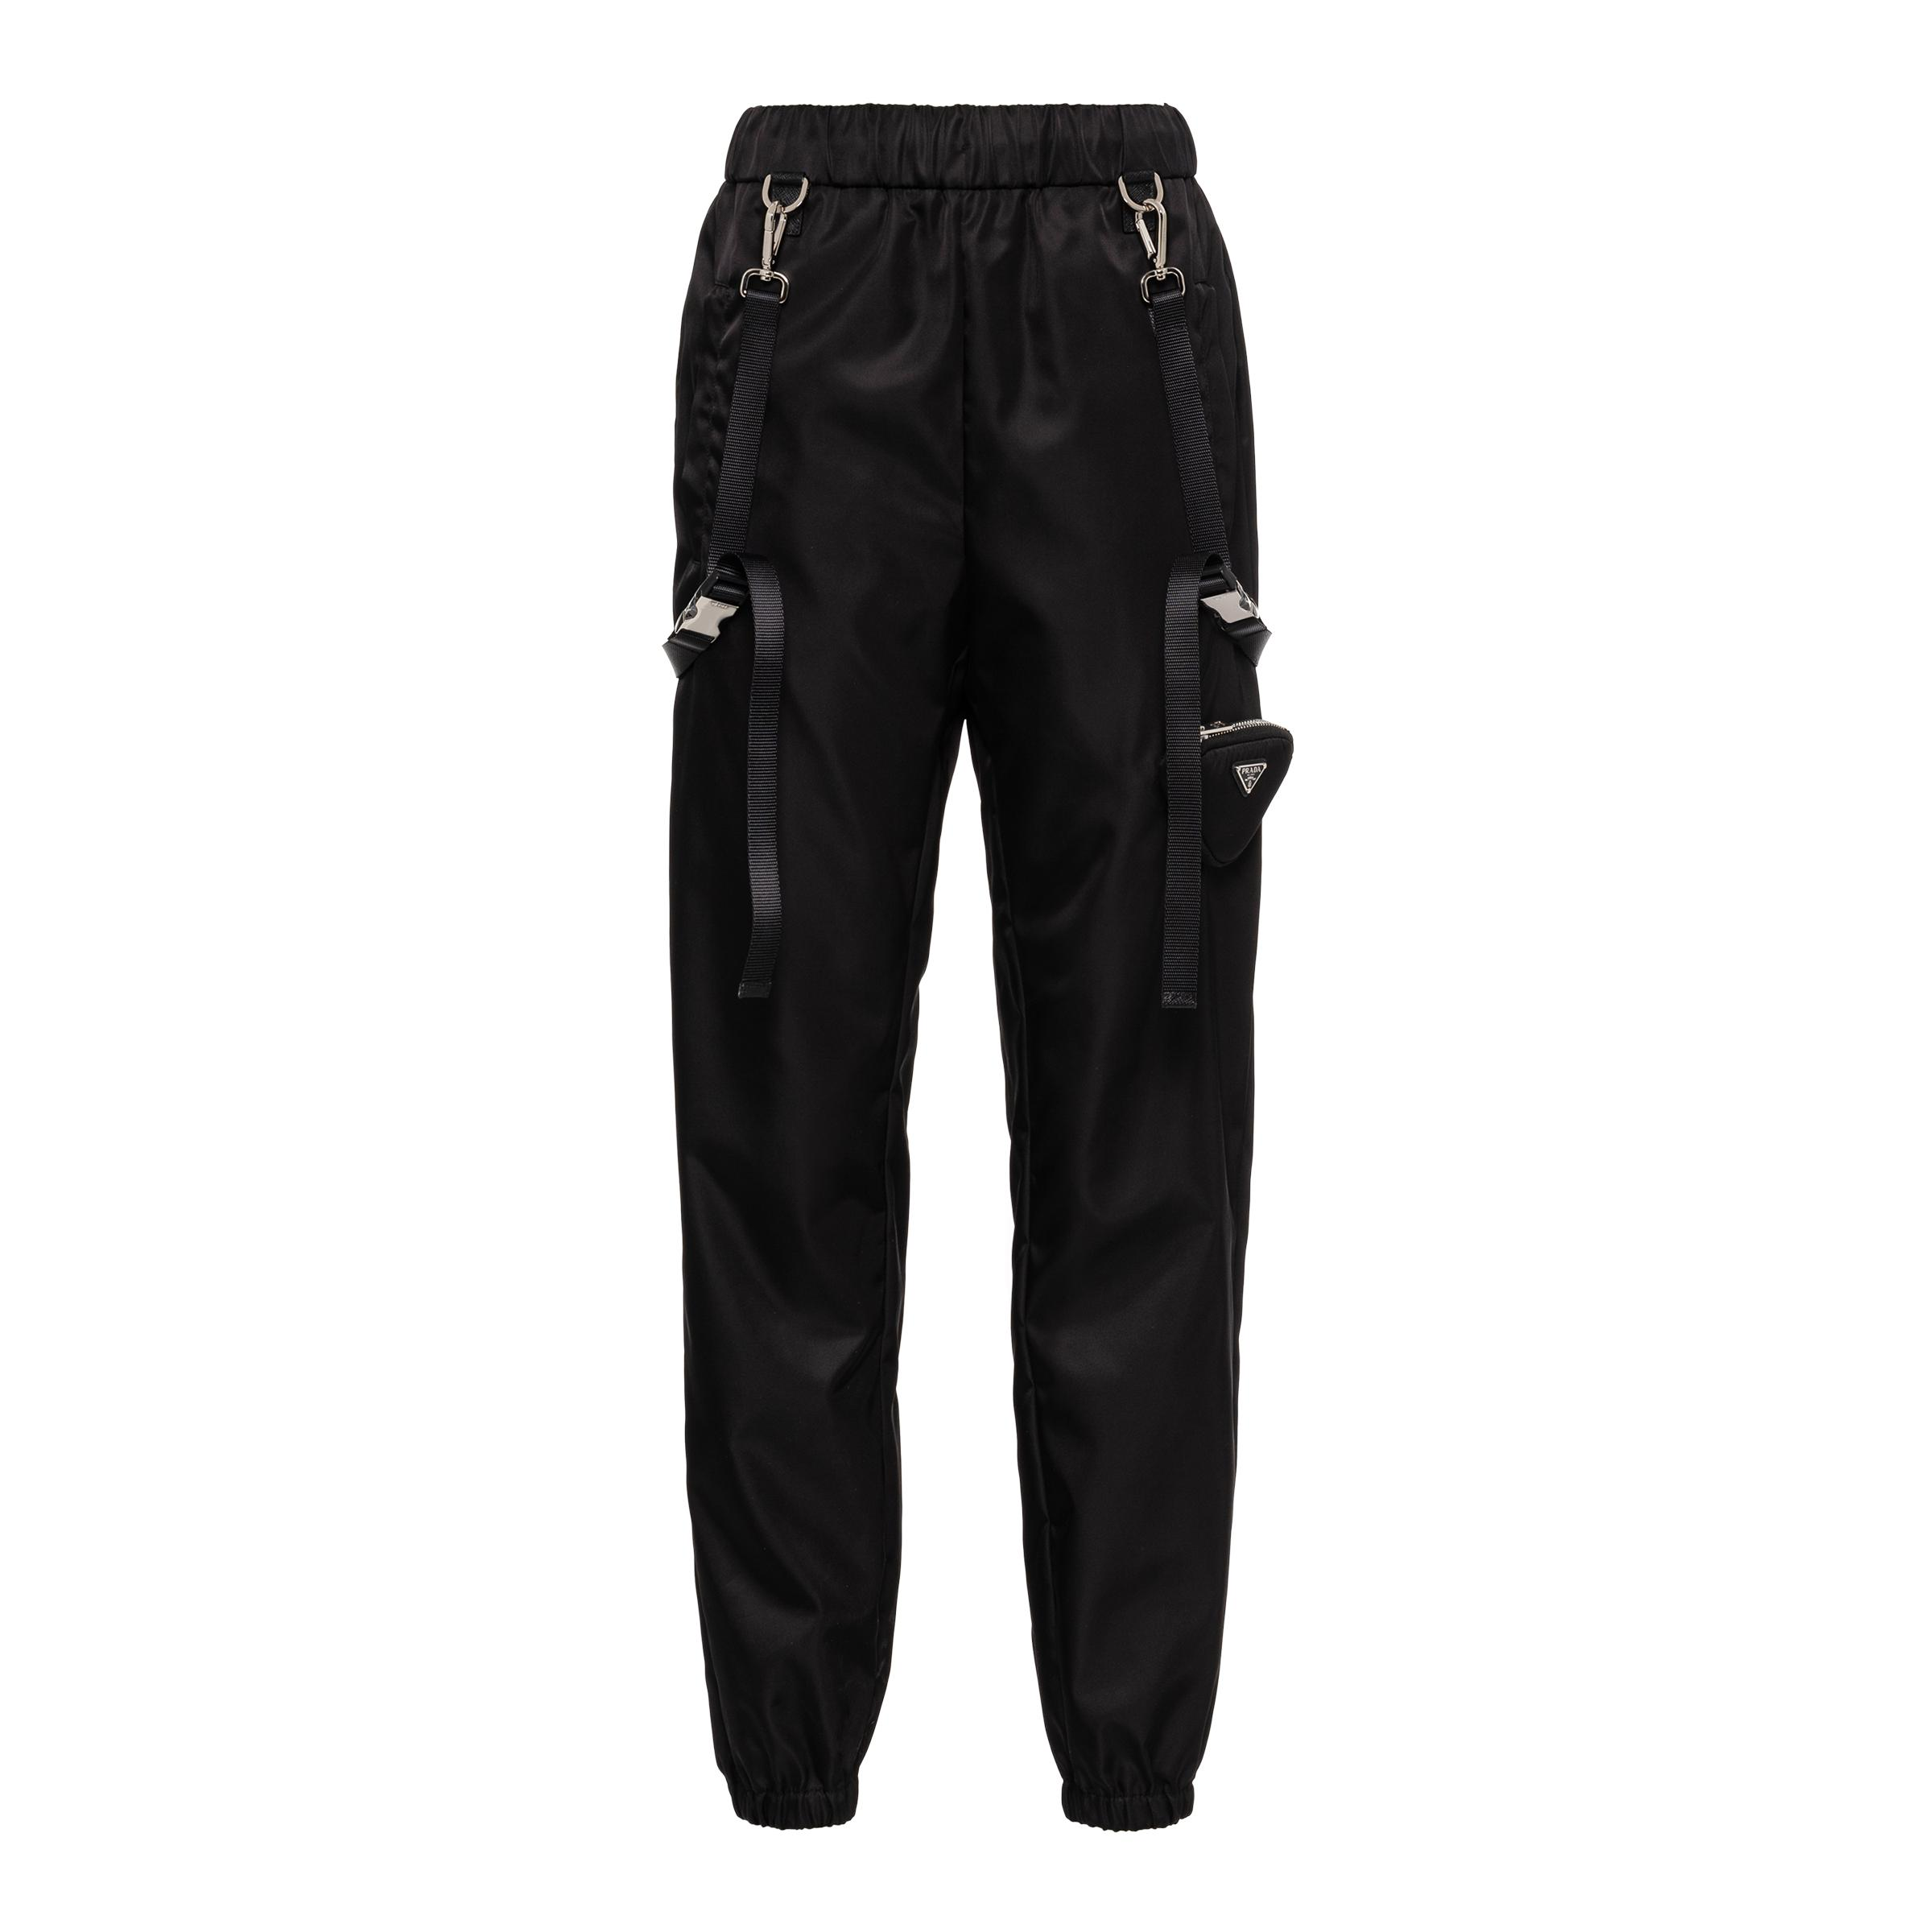 Re-nylon Pants With Suspenders And Pouch Women Black